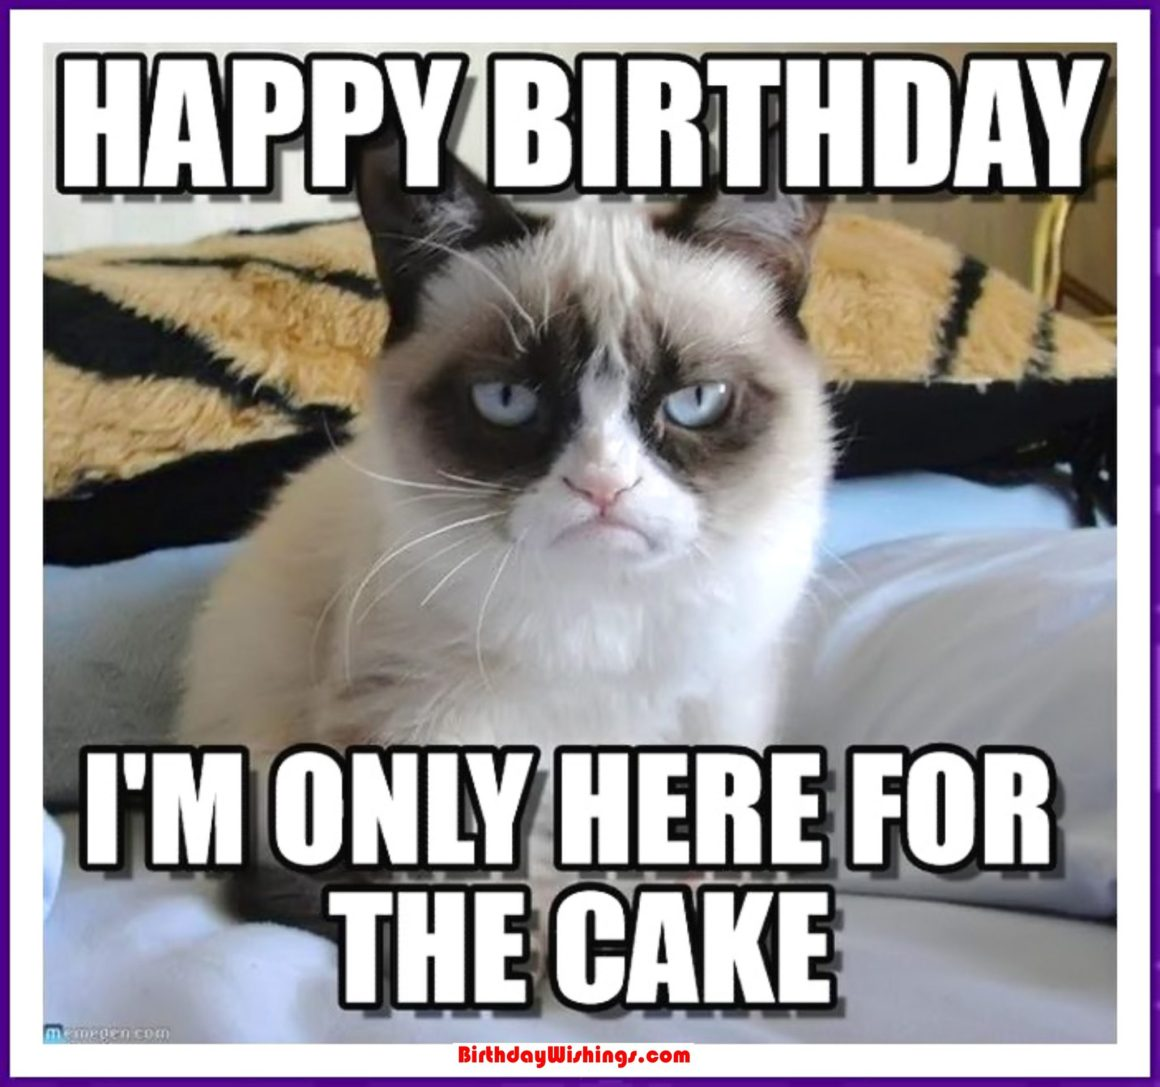 Funny Happy Birthday Memes With cats, Dogs & Funny Animals - photo#48